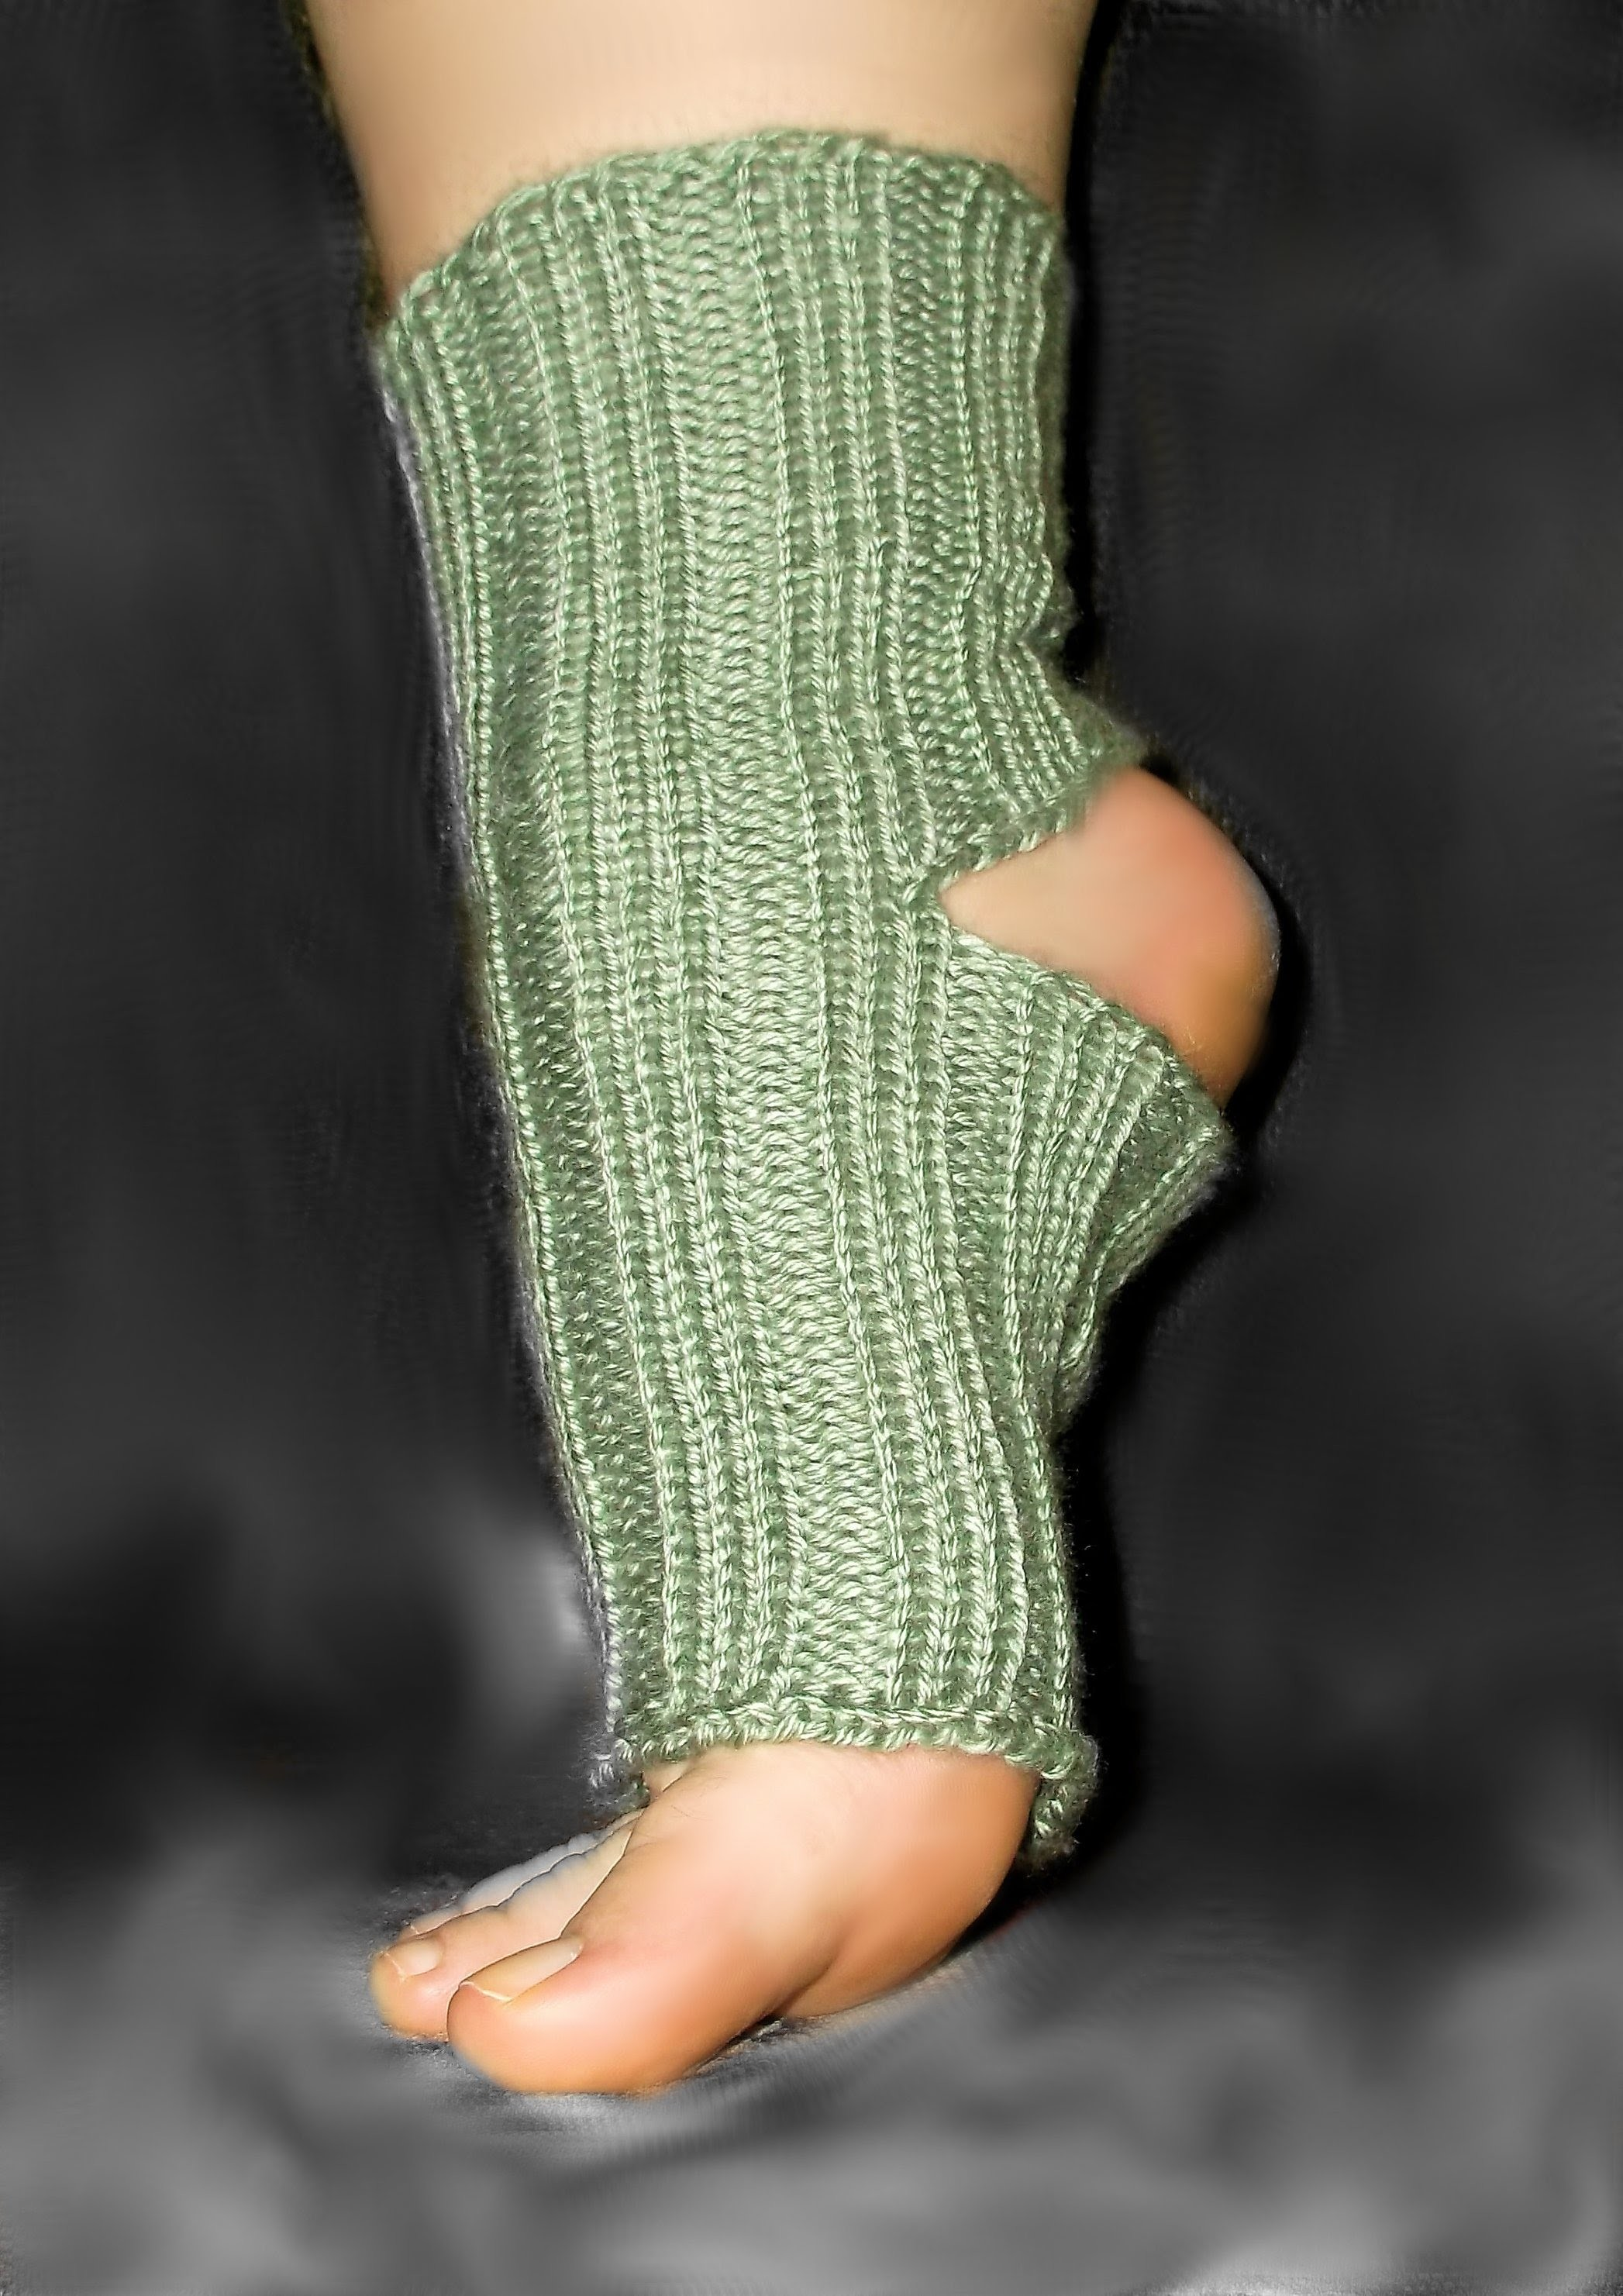 How To Loom Knit Yoga Socks